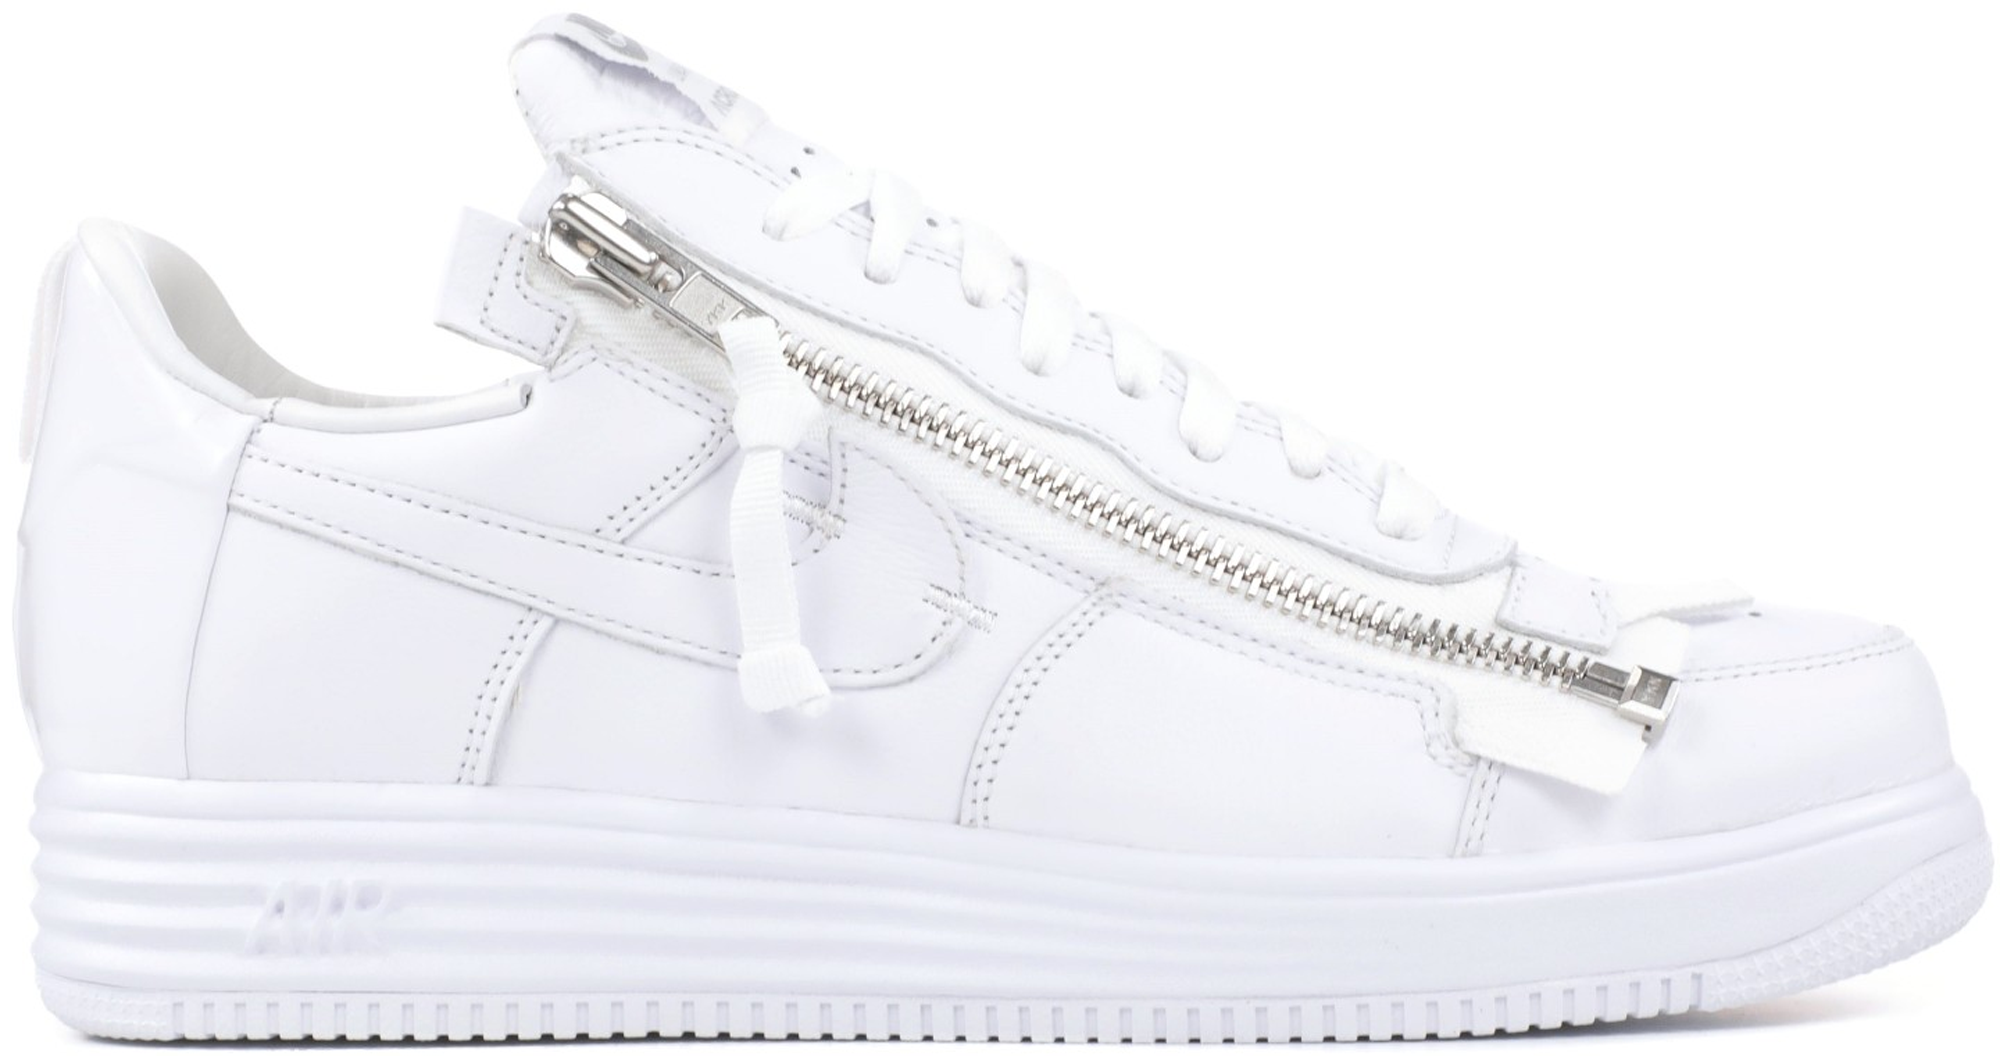 Lunar Force 1 Low Acronym (AF100)